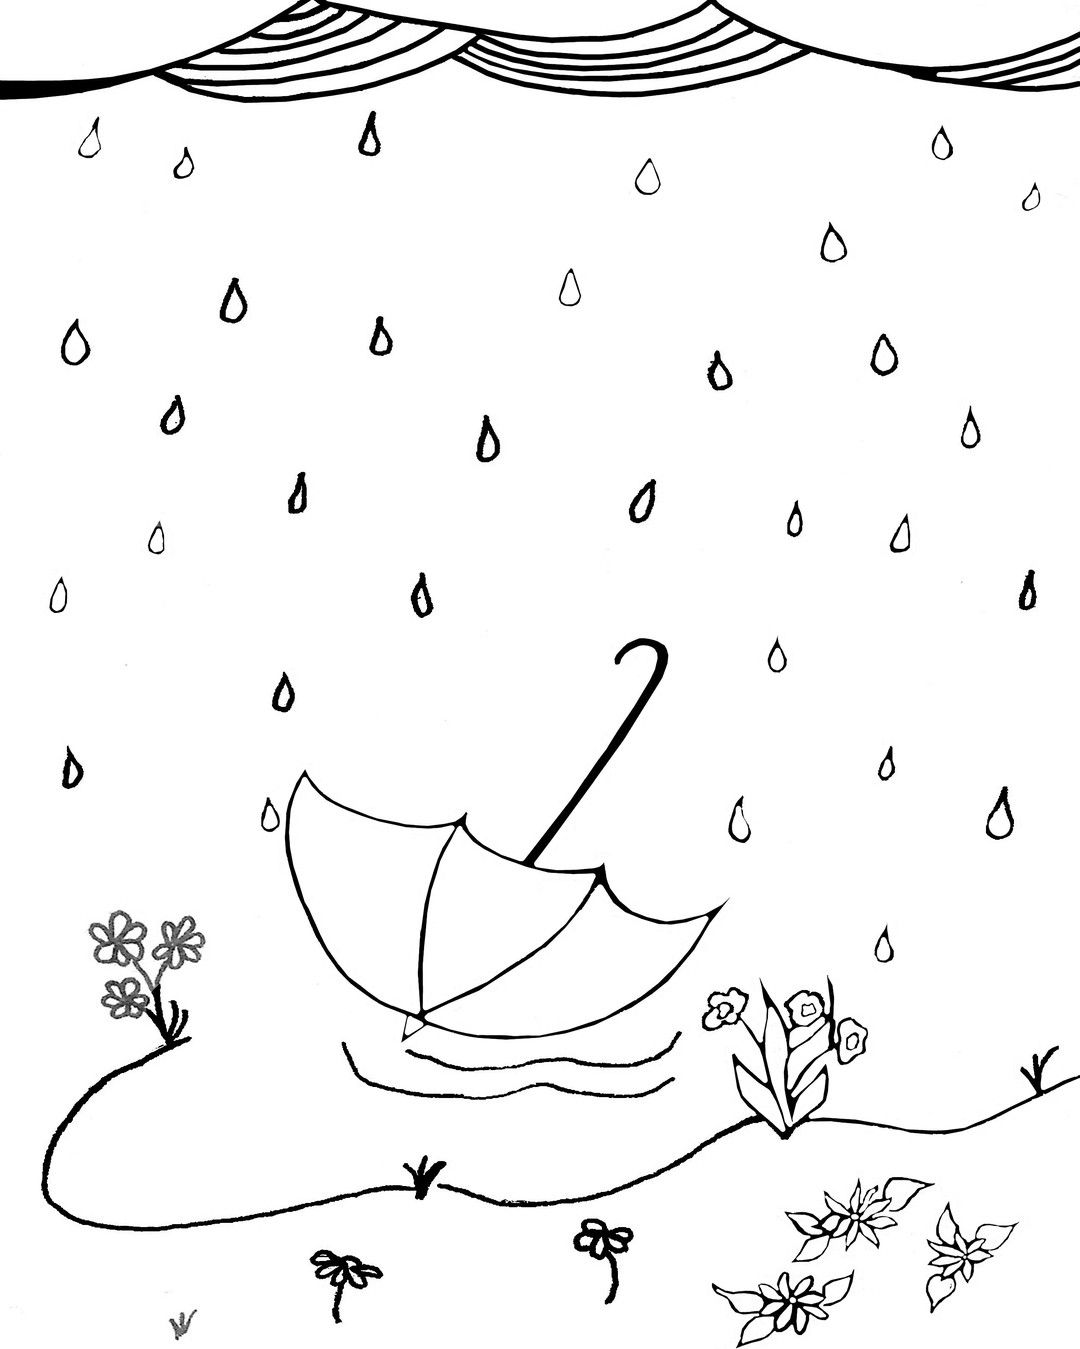 47+ Rainy day coloring pages for adults ideas